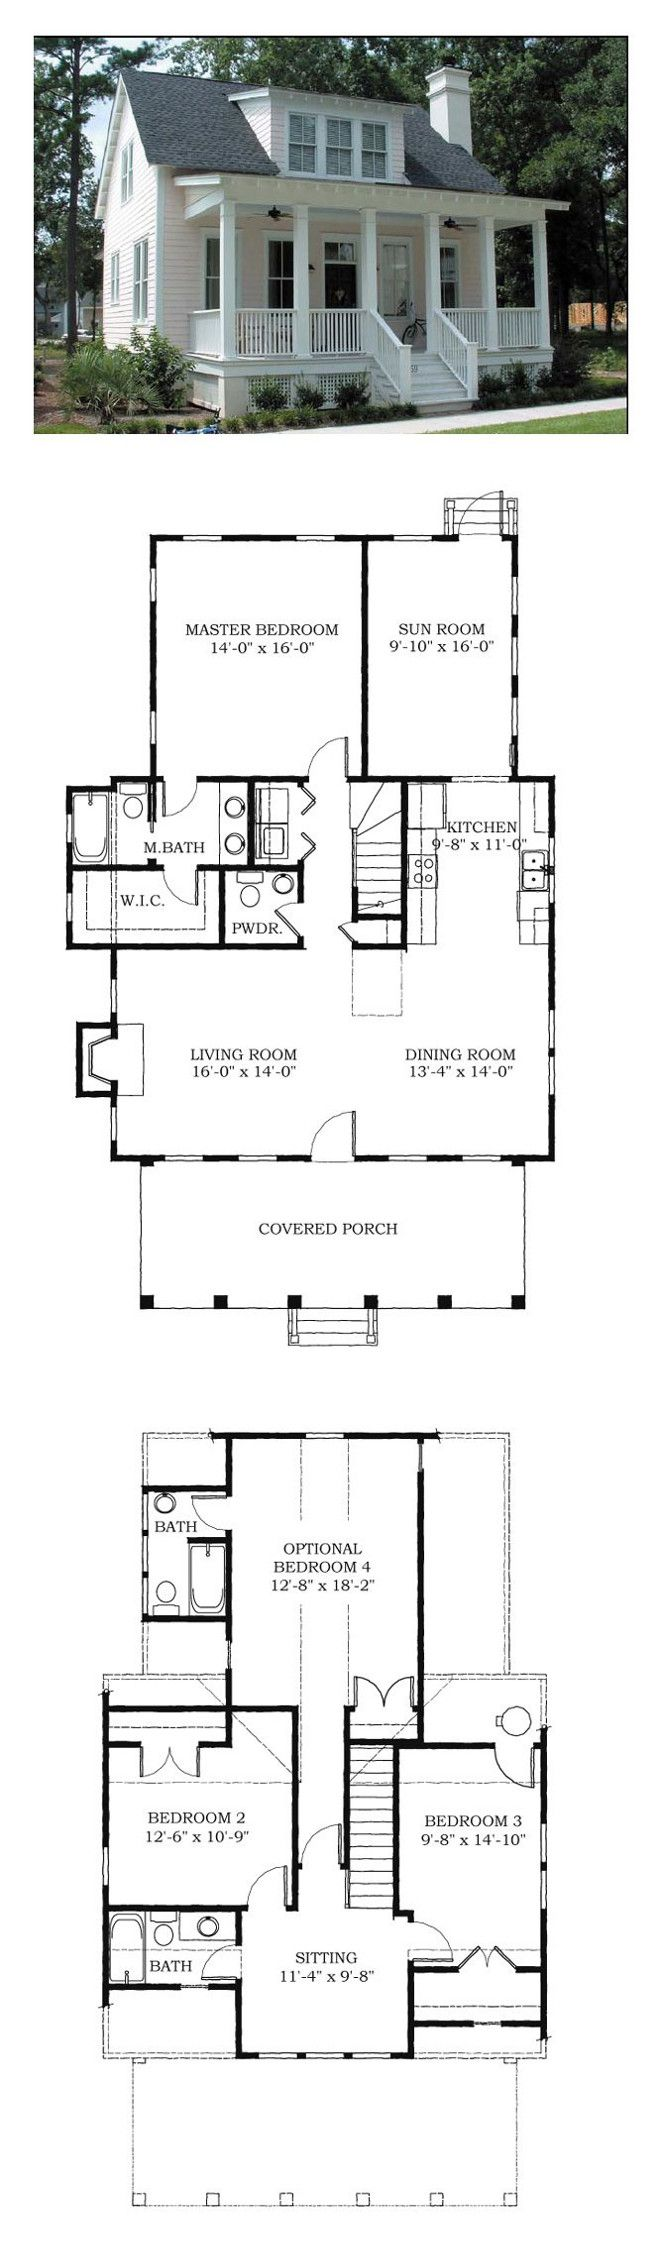 #tinyhouse #smallhome #tinyhome #tinyhouseplans Cottage floor plans via Cool House Plans